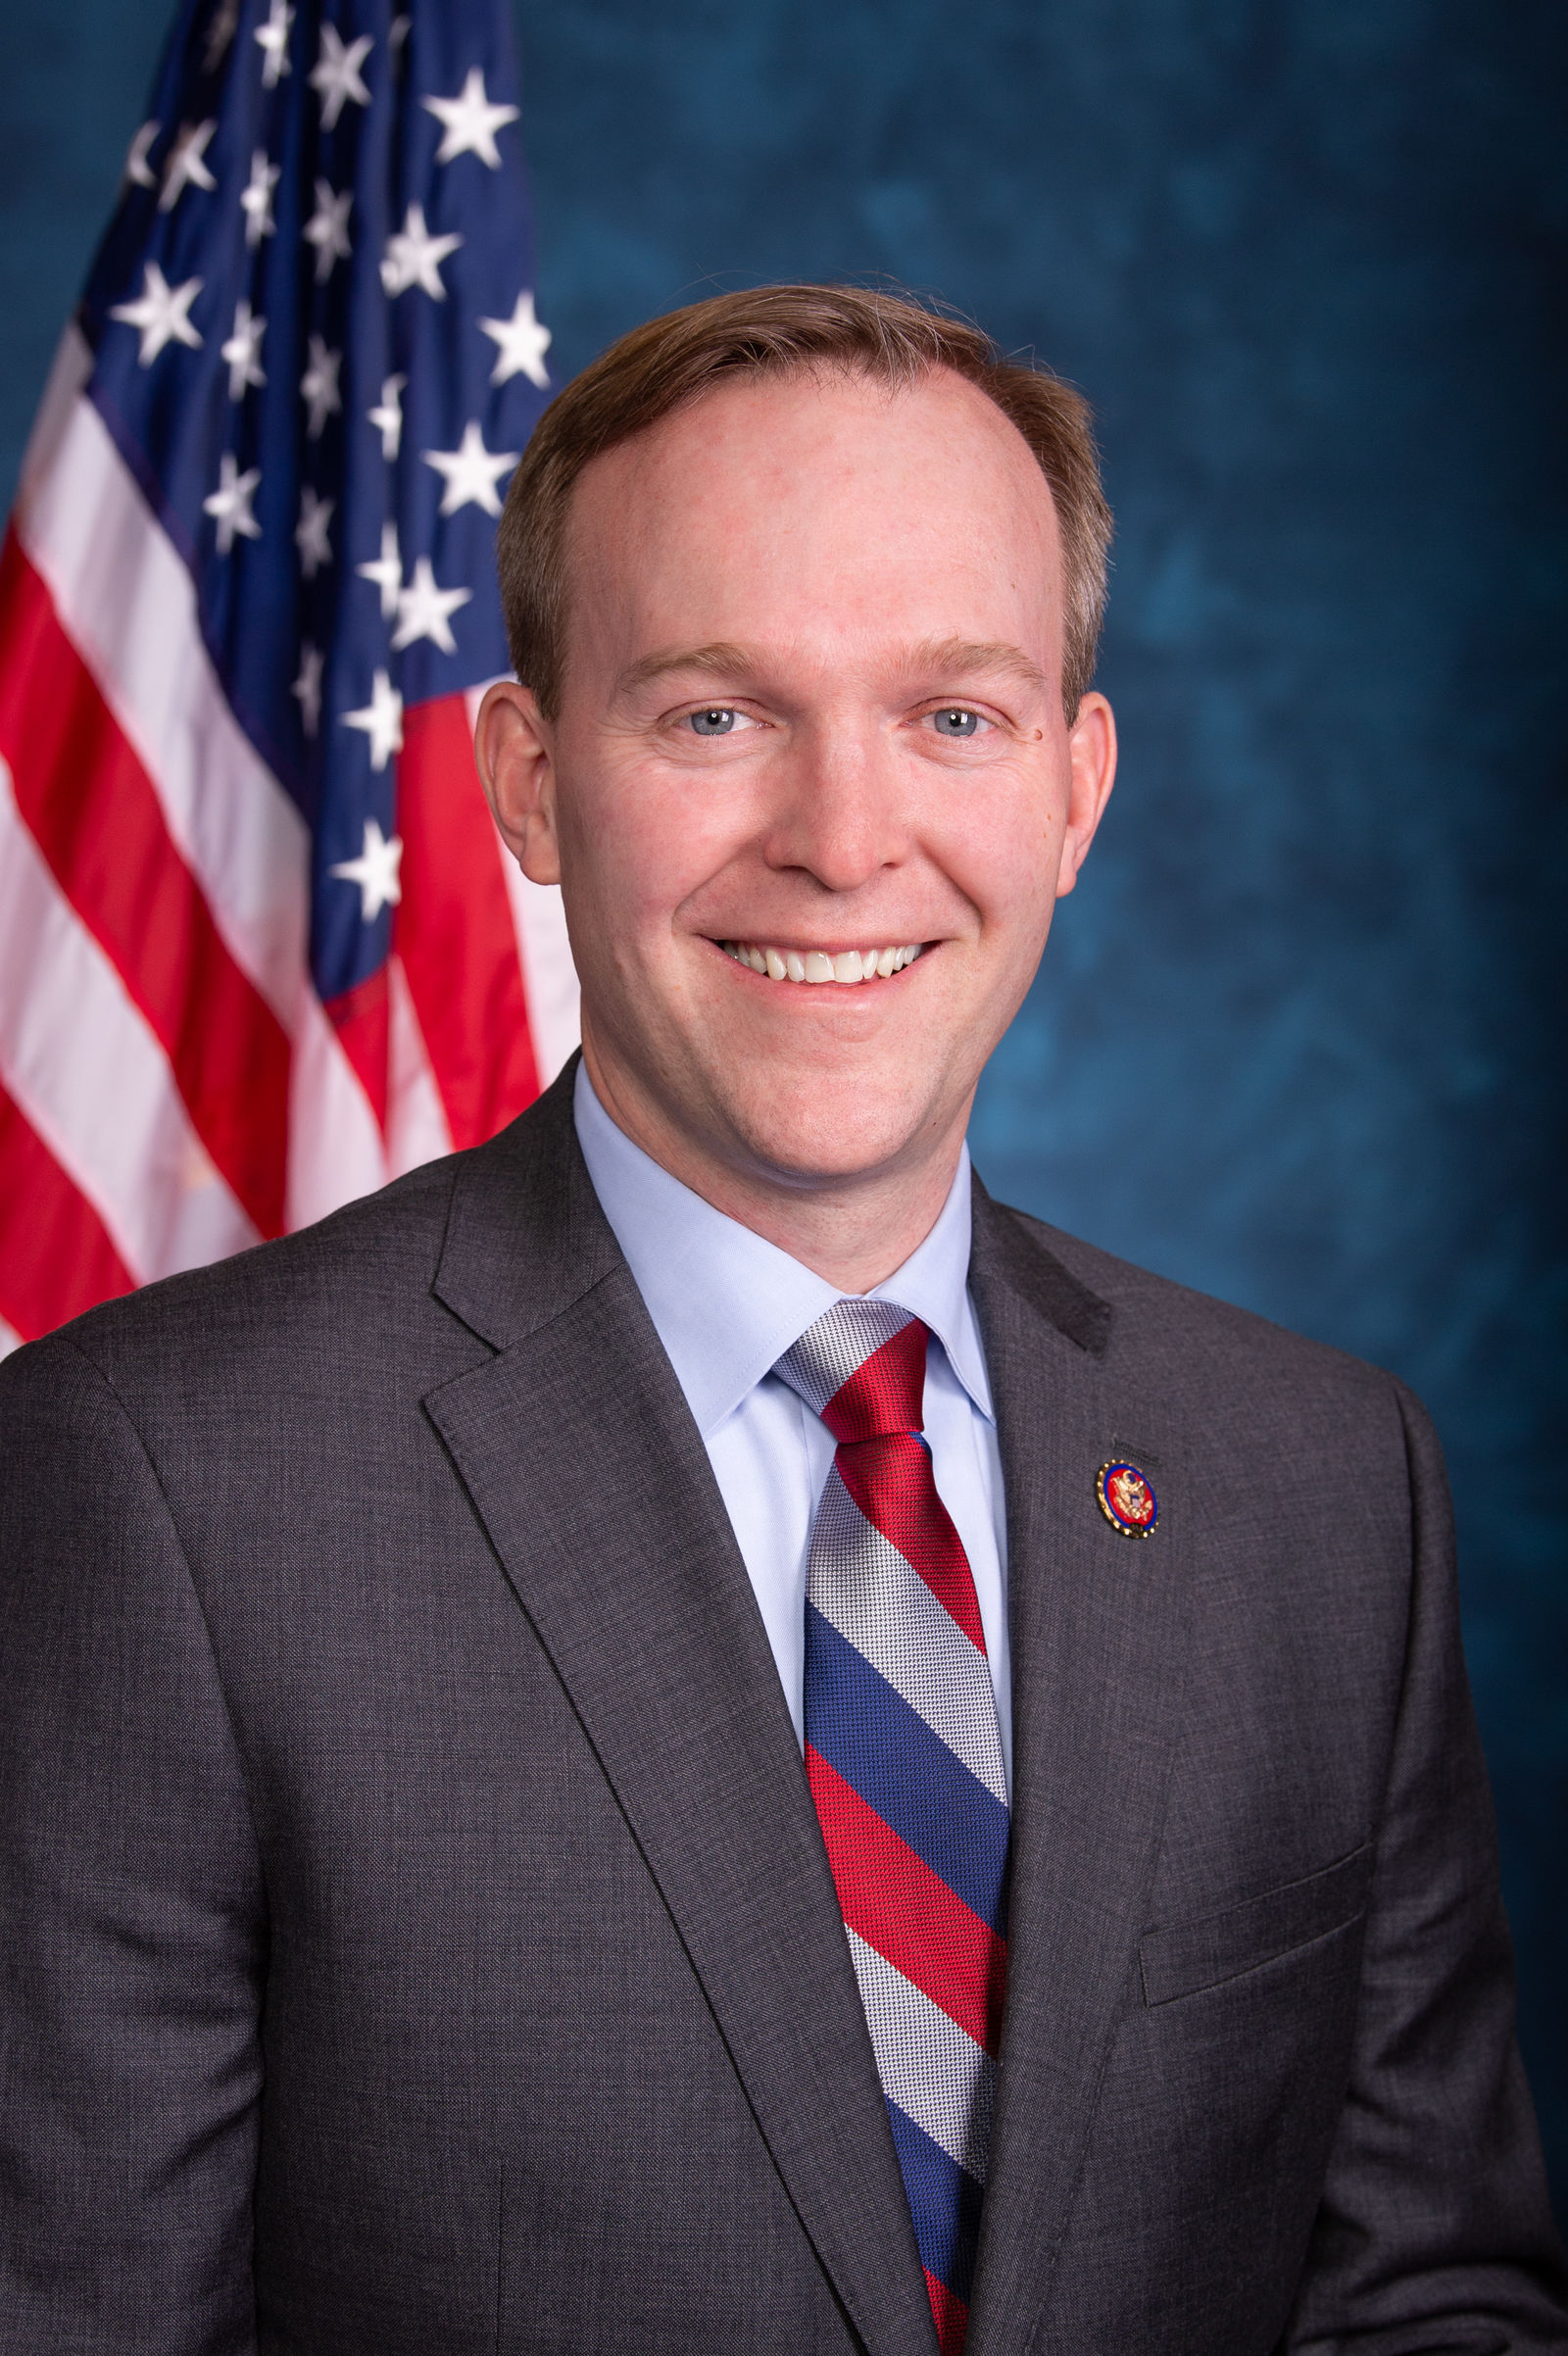 Rep. Ben McAdams is seemingly in a good position with voters in his 4th Congressional District as he aims for another term in Washington according to a new survey. (Photo: McAdams' office){ }